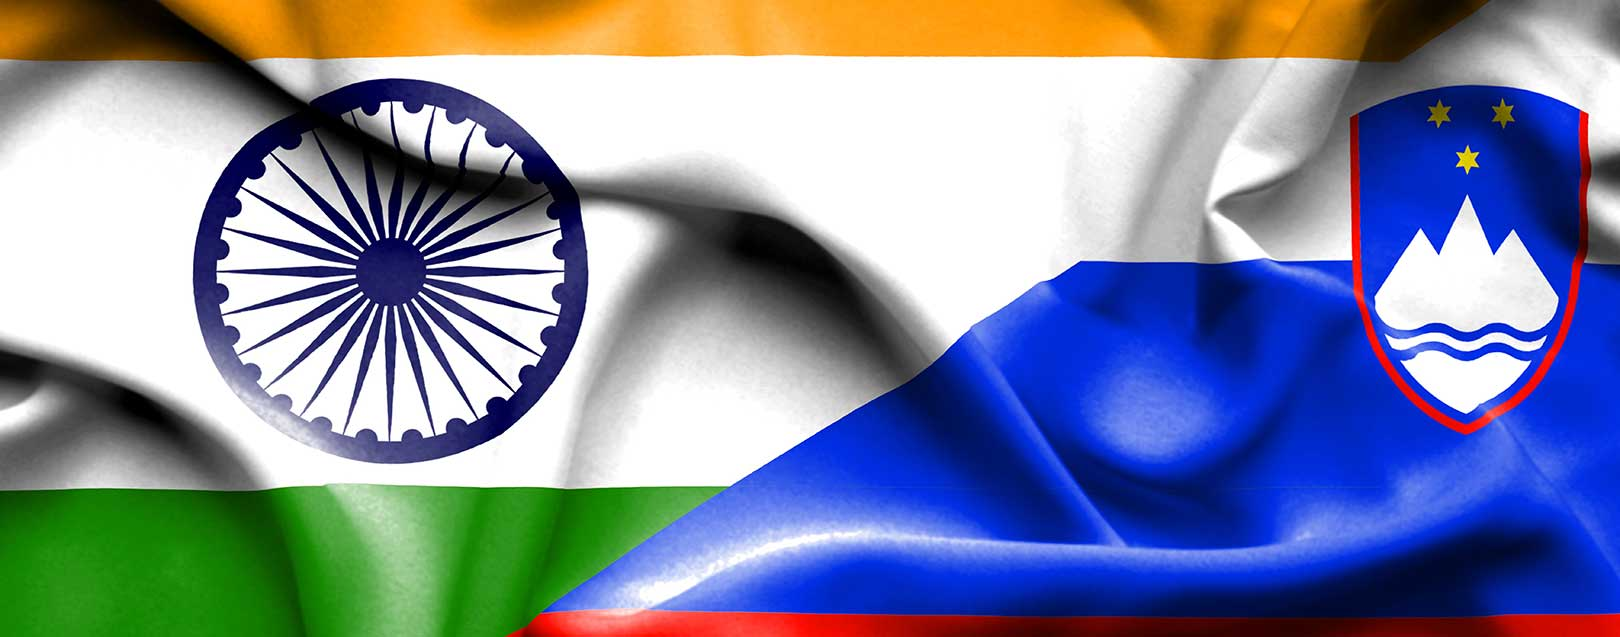 Slovenia asks Indian firms to invest, build business